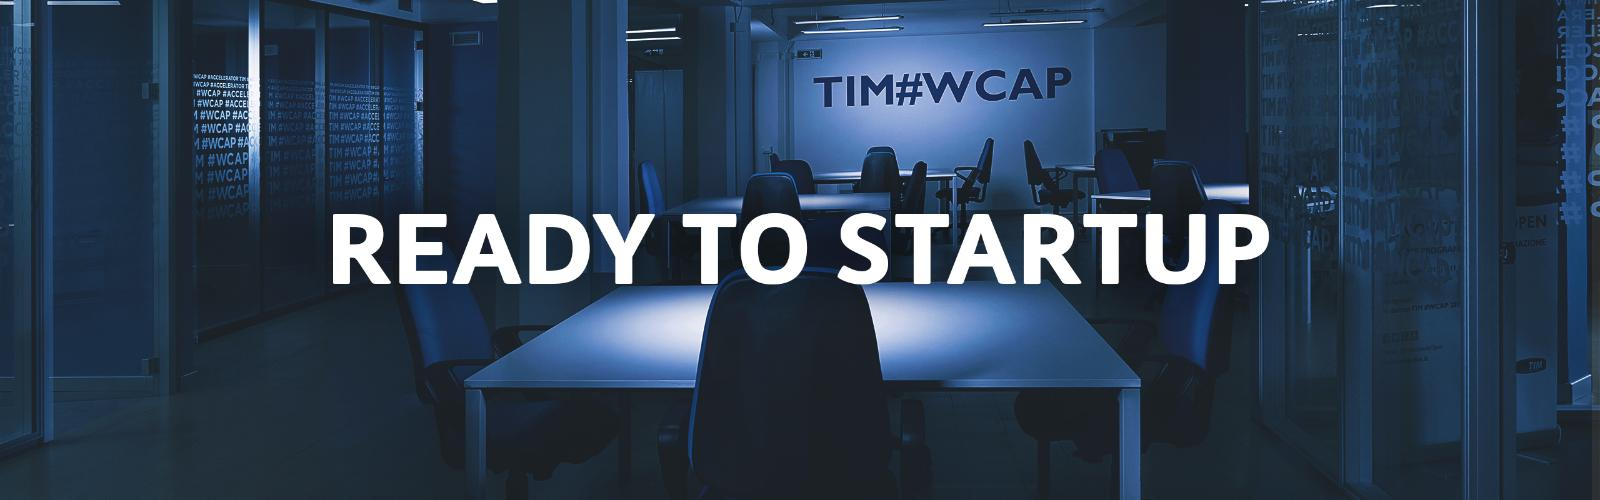 ready-ti-start-up-TIMWCAP2016